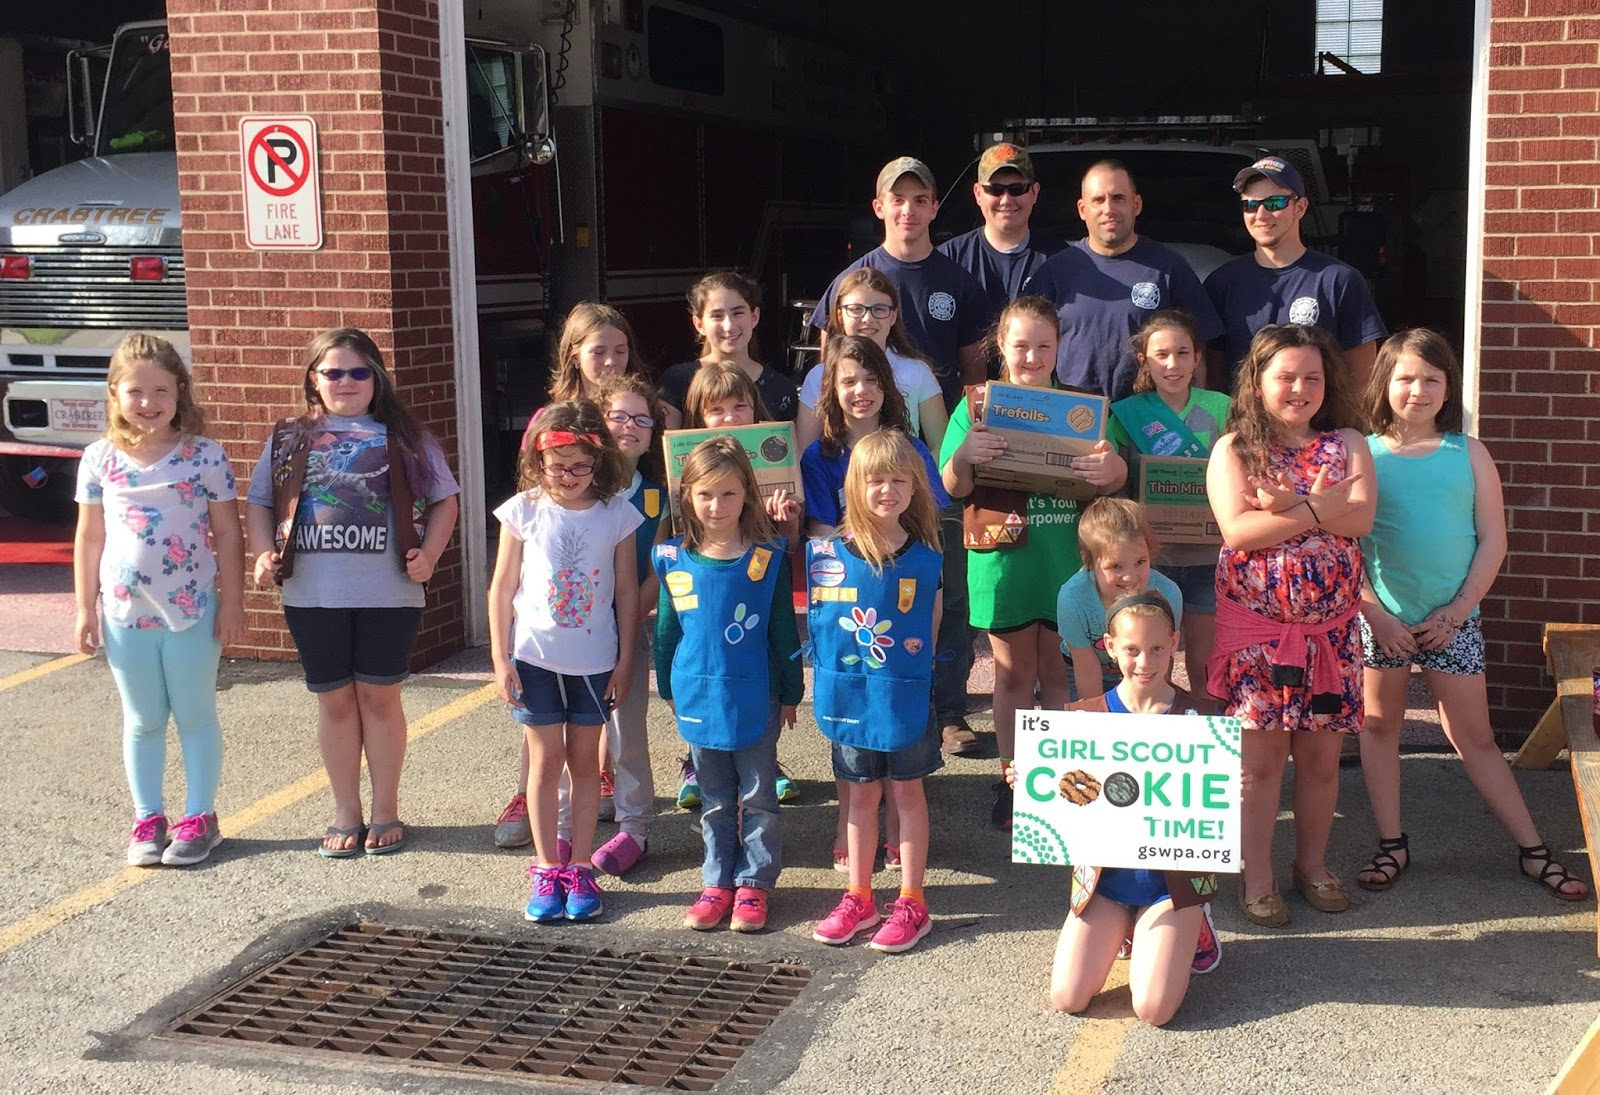 Girl scouts western pennsylvania greensburg girl scouts to deliver greensburg girl scouts to deliver cookies to local first responders publicscrutiny Image collections